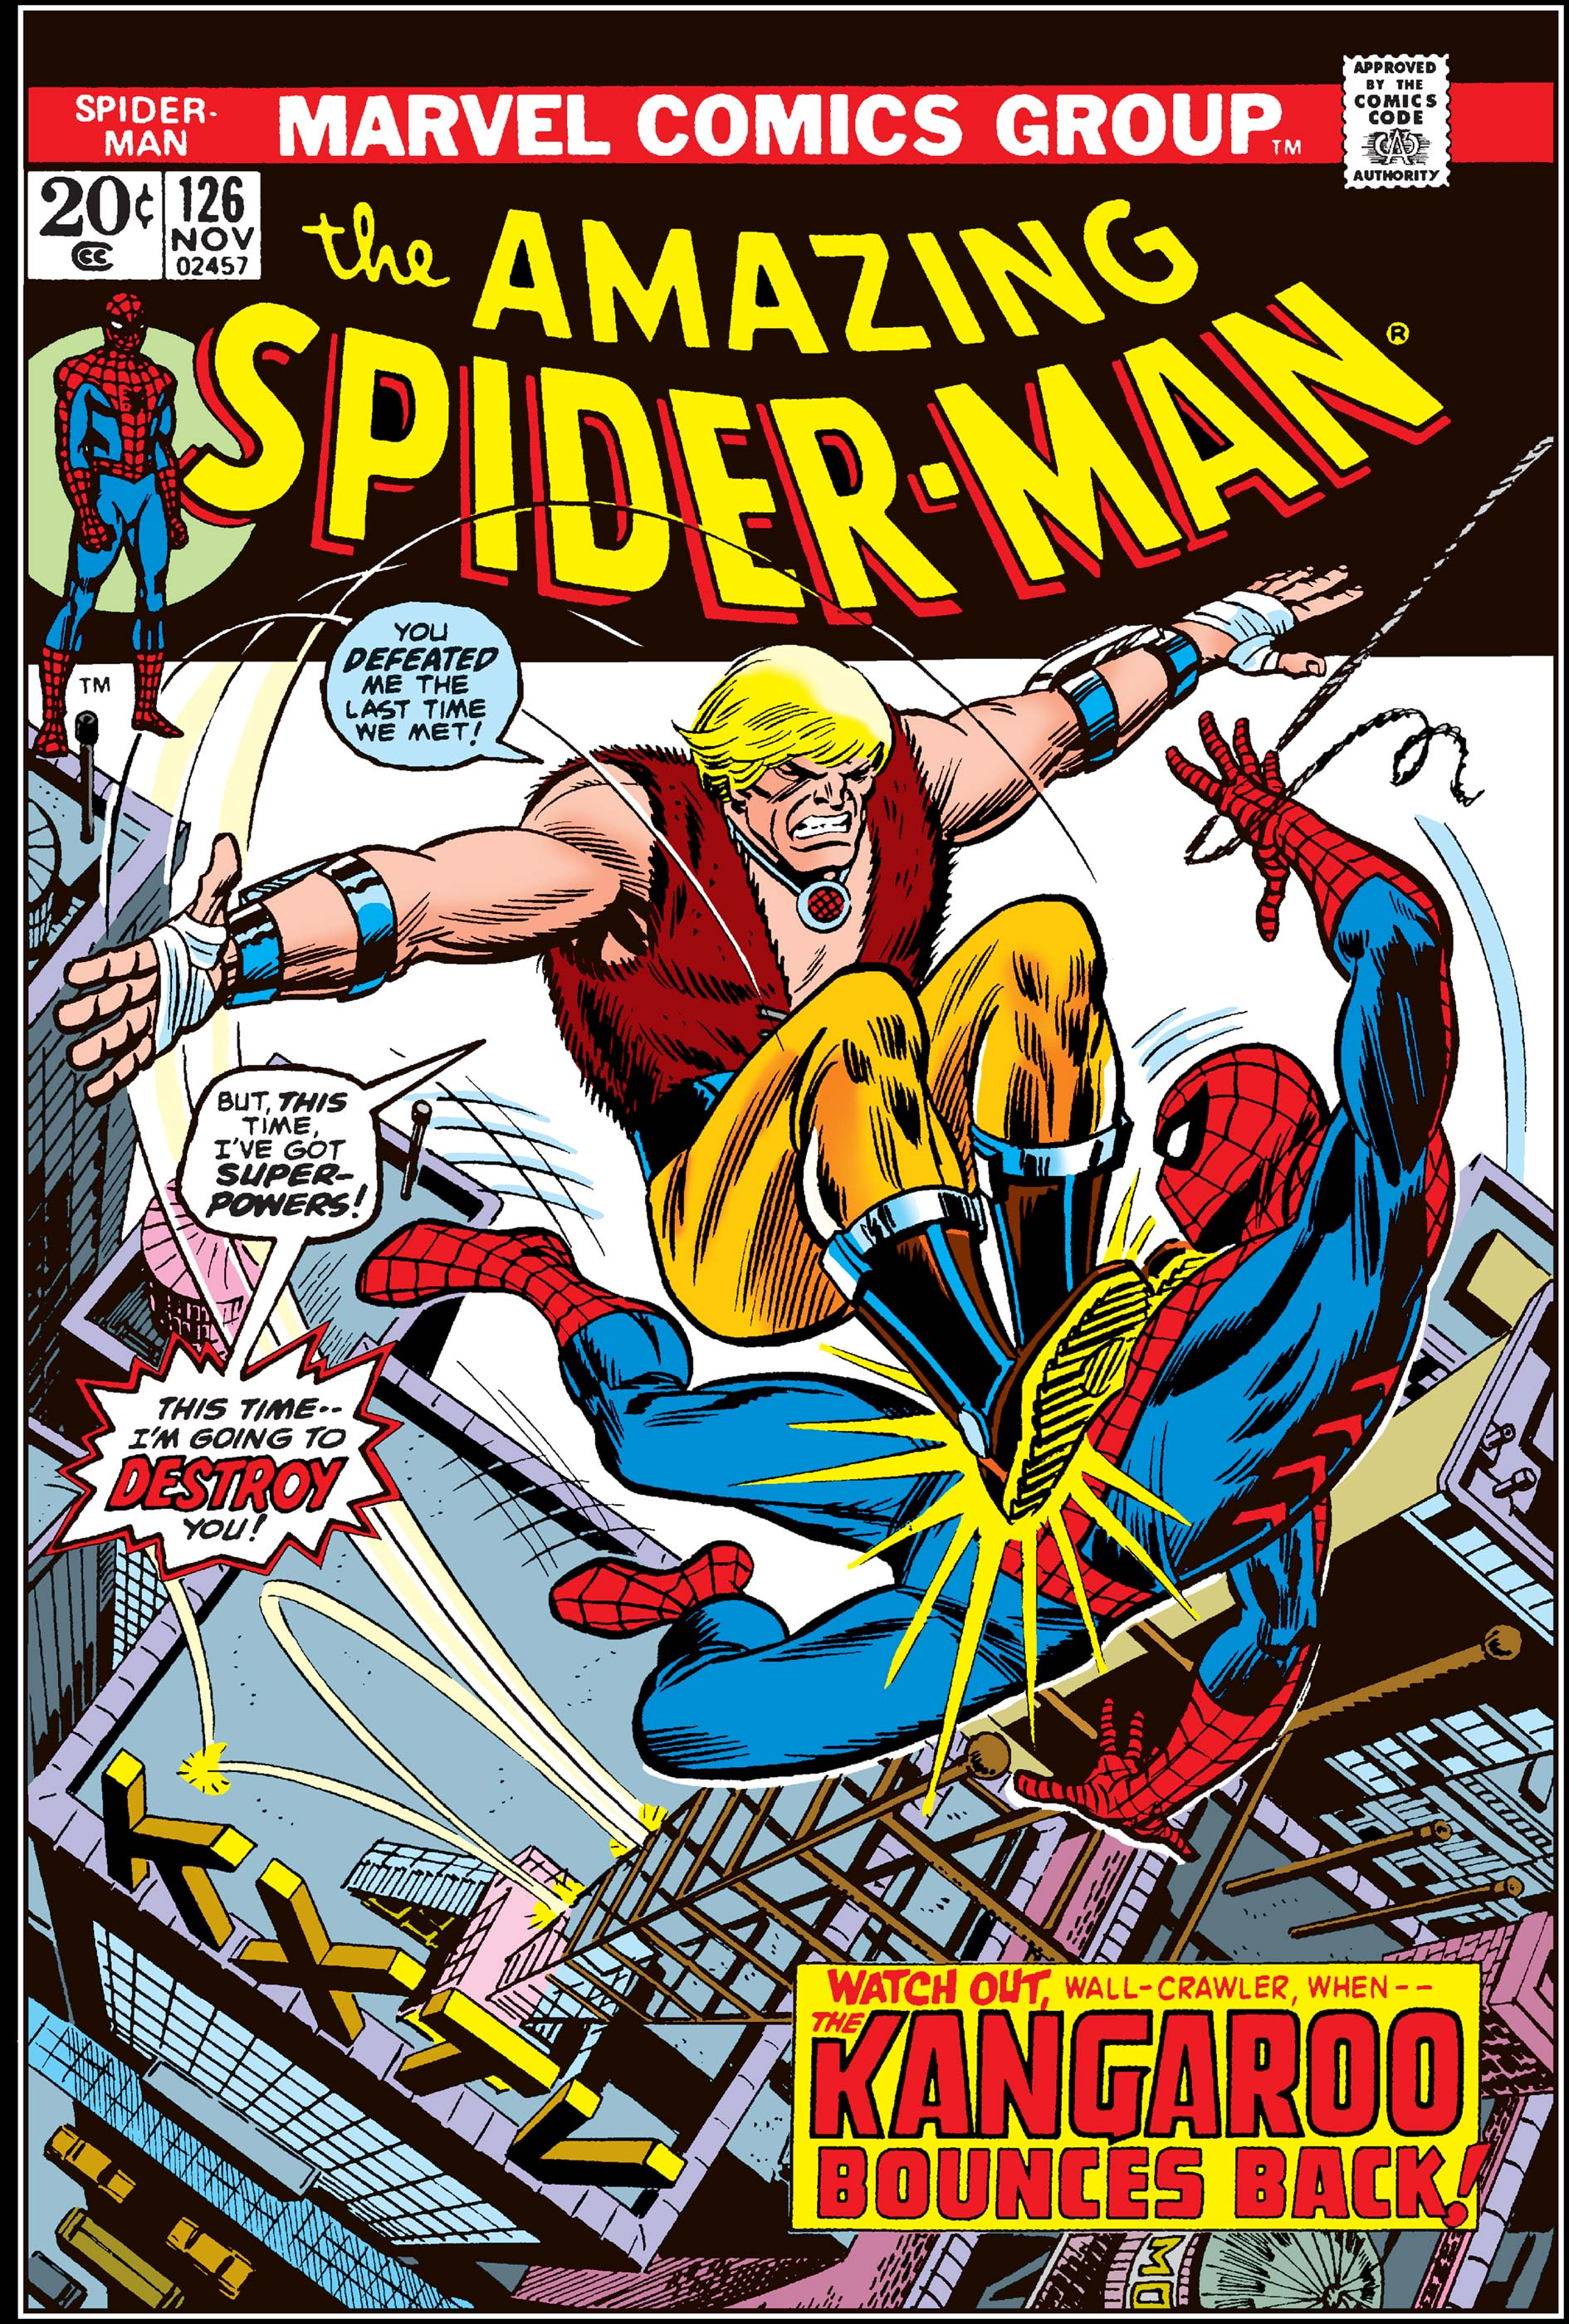 The Amazing Spider-Man (1963) #126